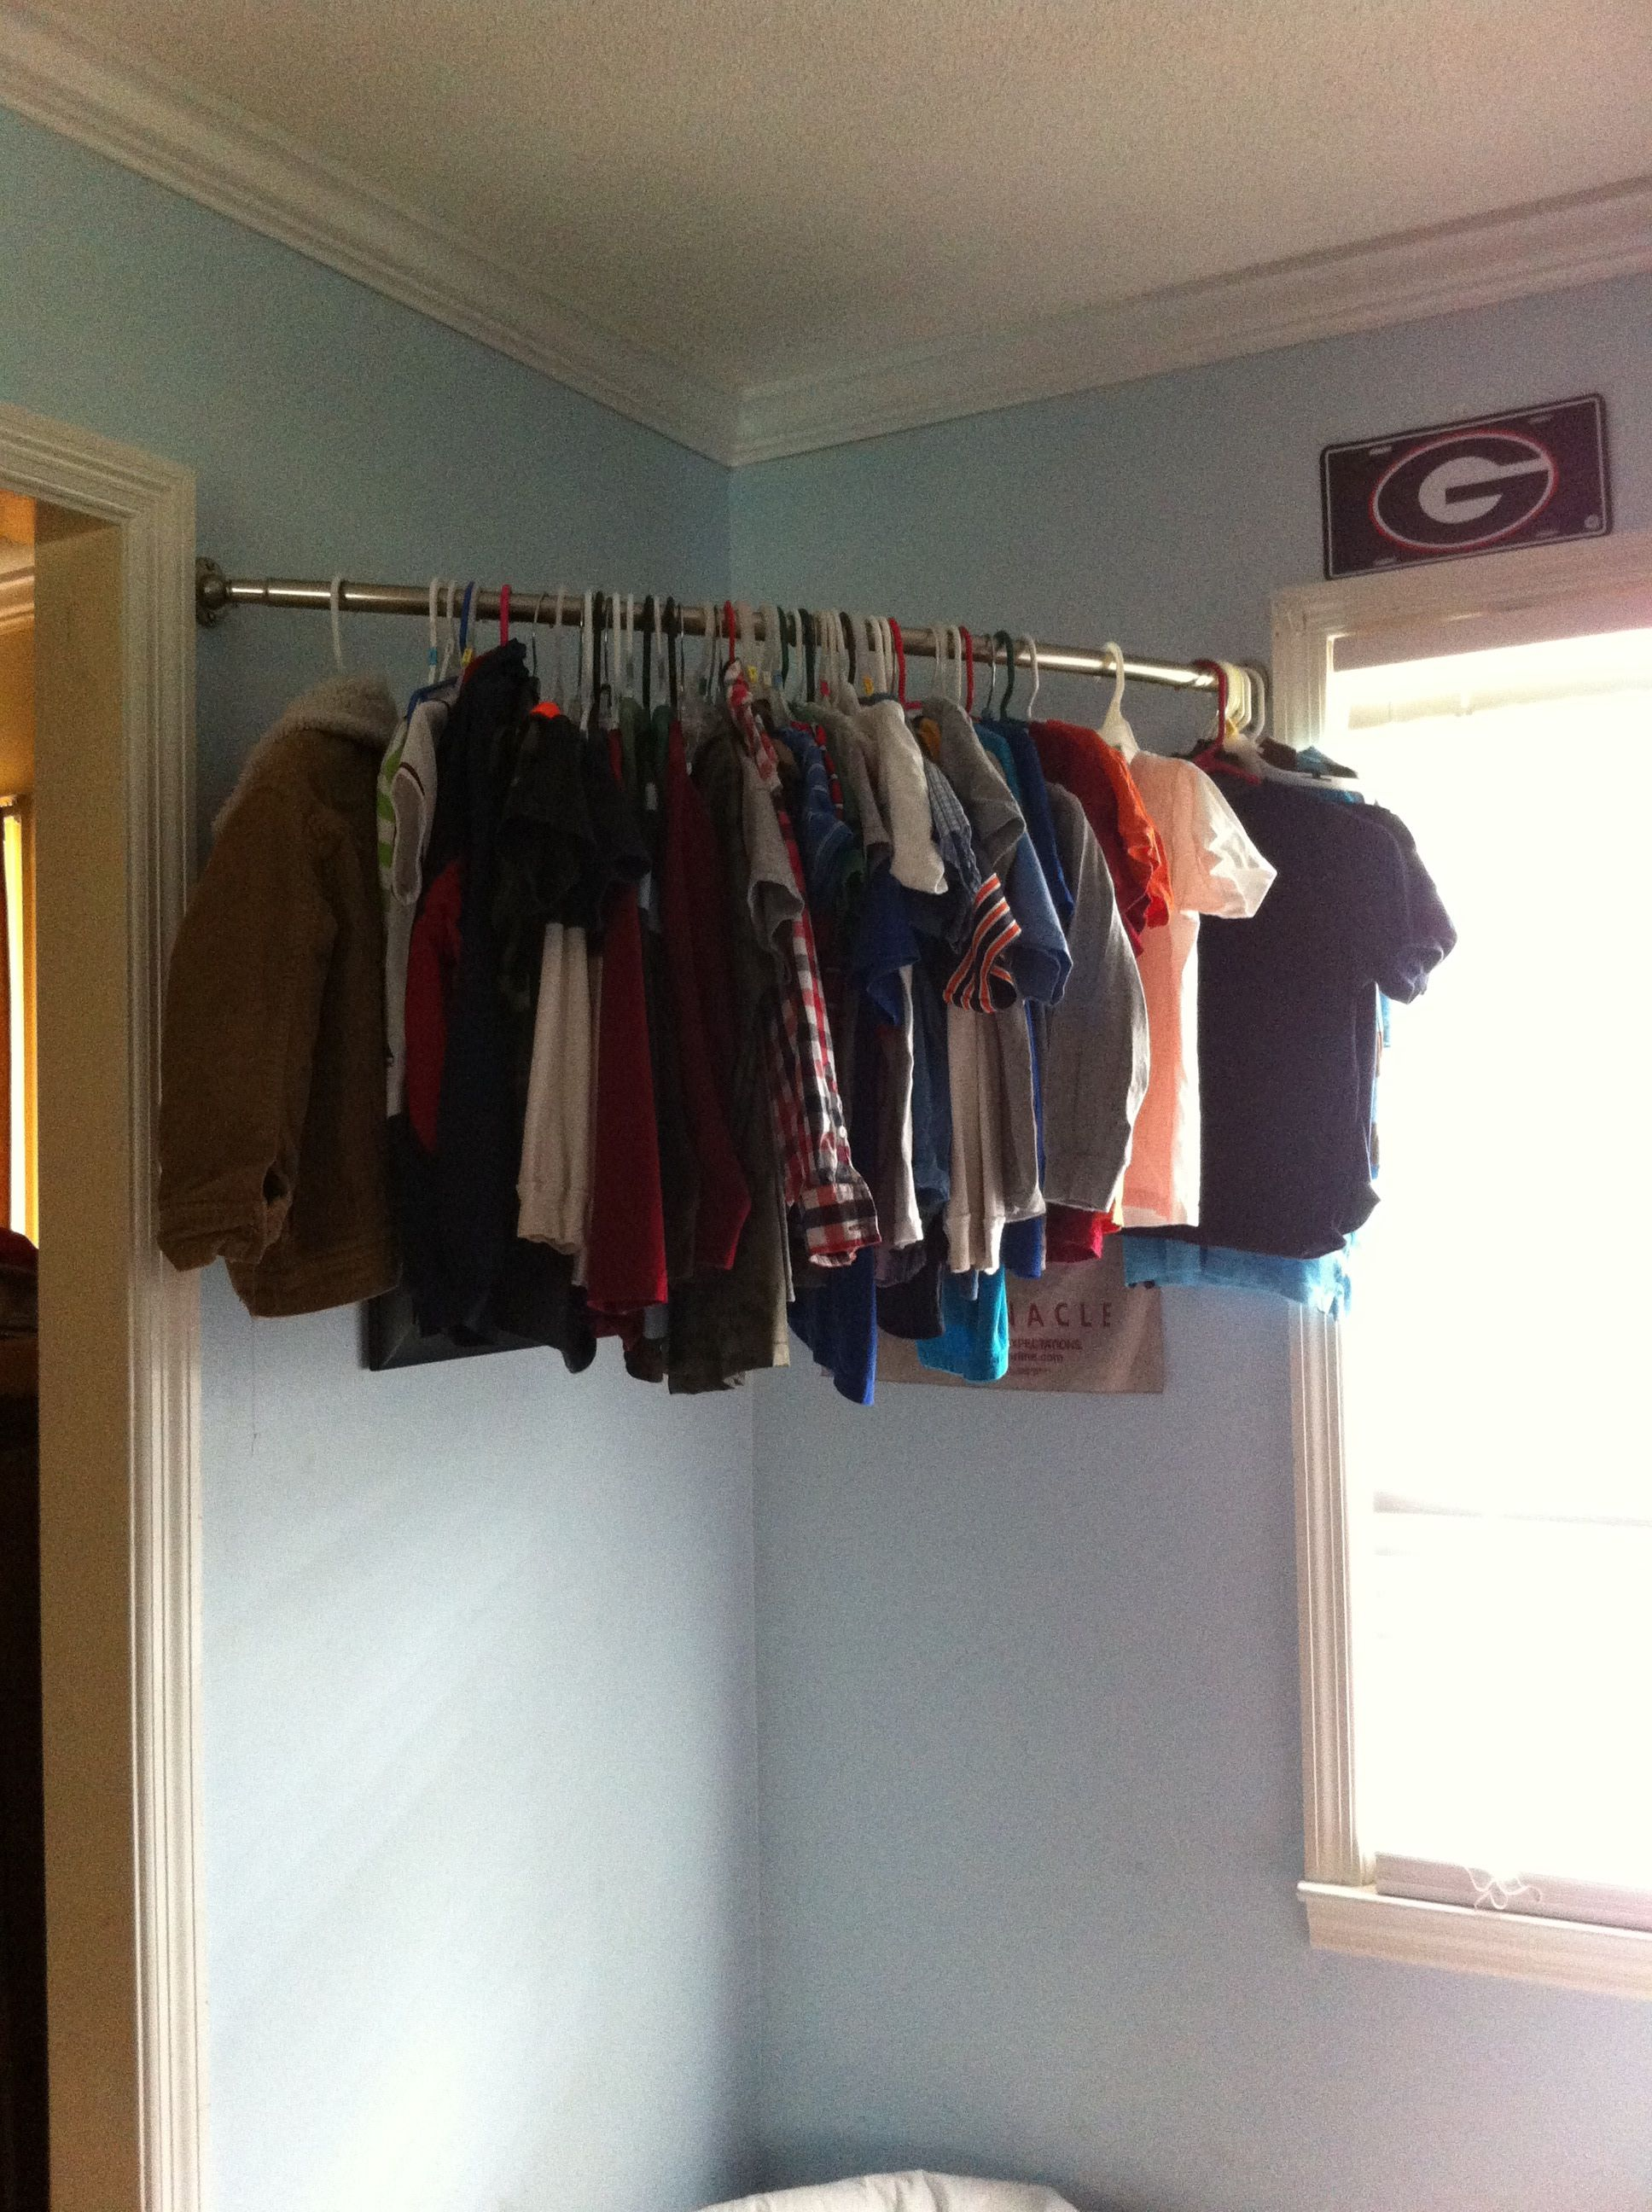 Curved Closet Rod Endearing No Closet I Used A Curved Shower Rod For My Son's Clothes Design Inspiration